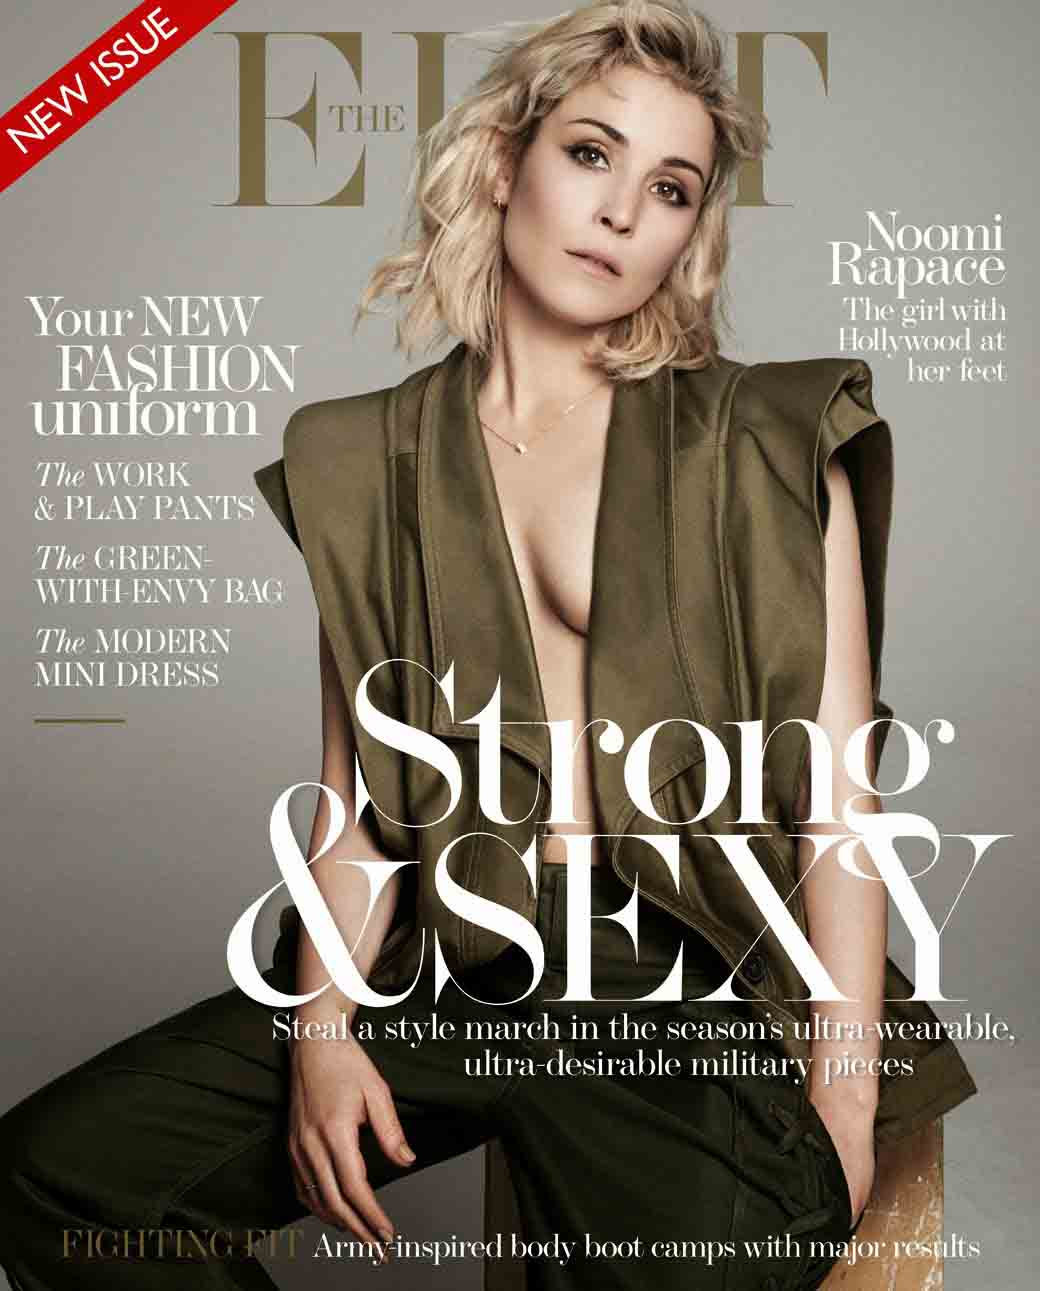 Noomi On The Cover Of The Latest Edition Of 'The Edit' – Gallery